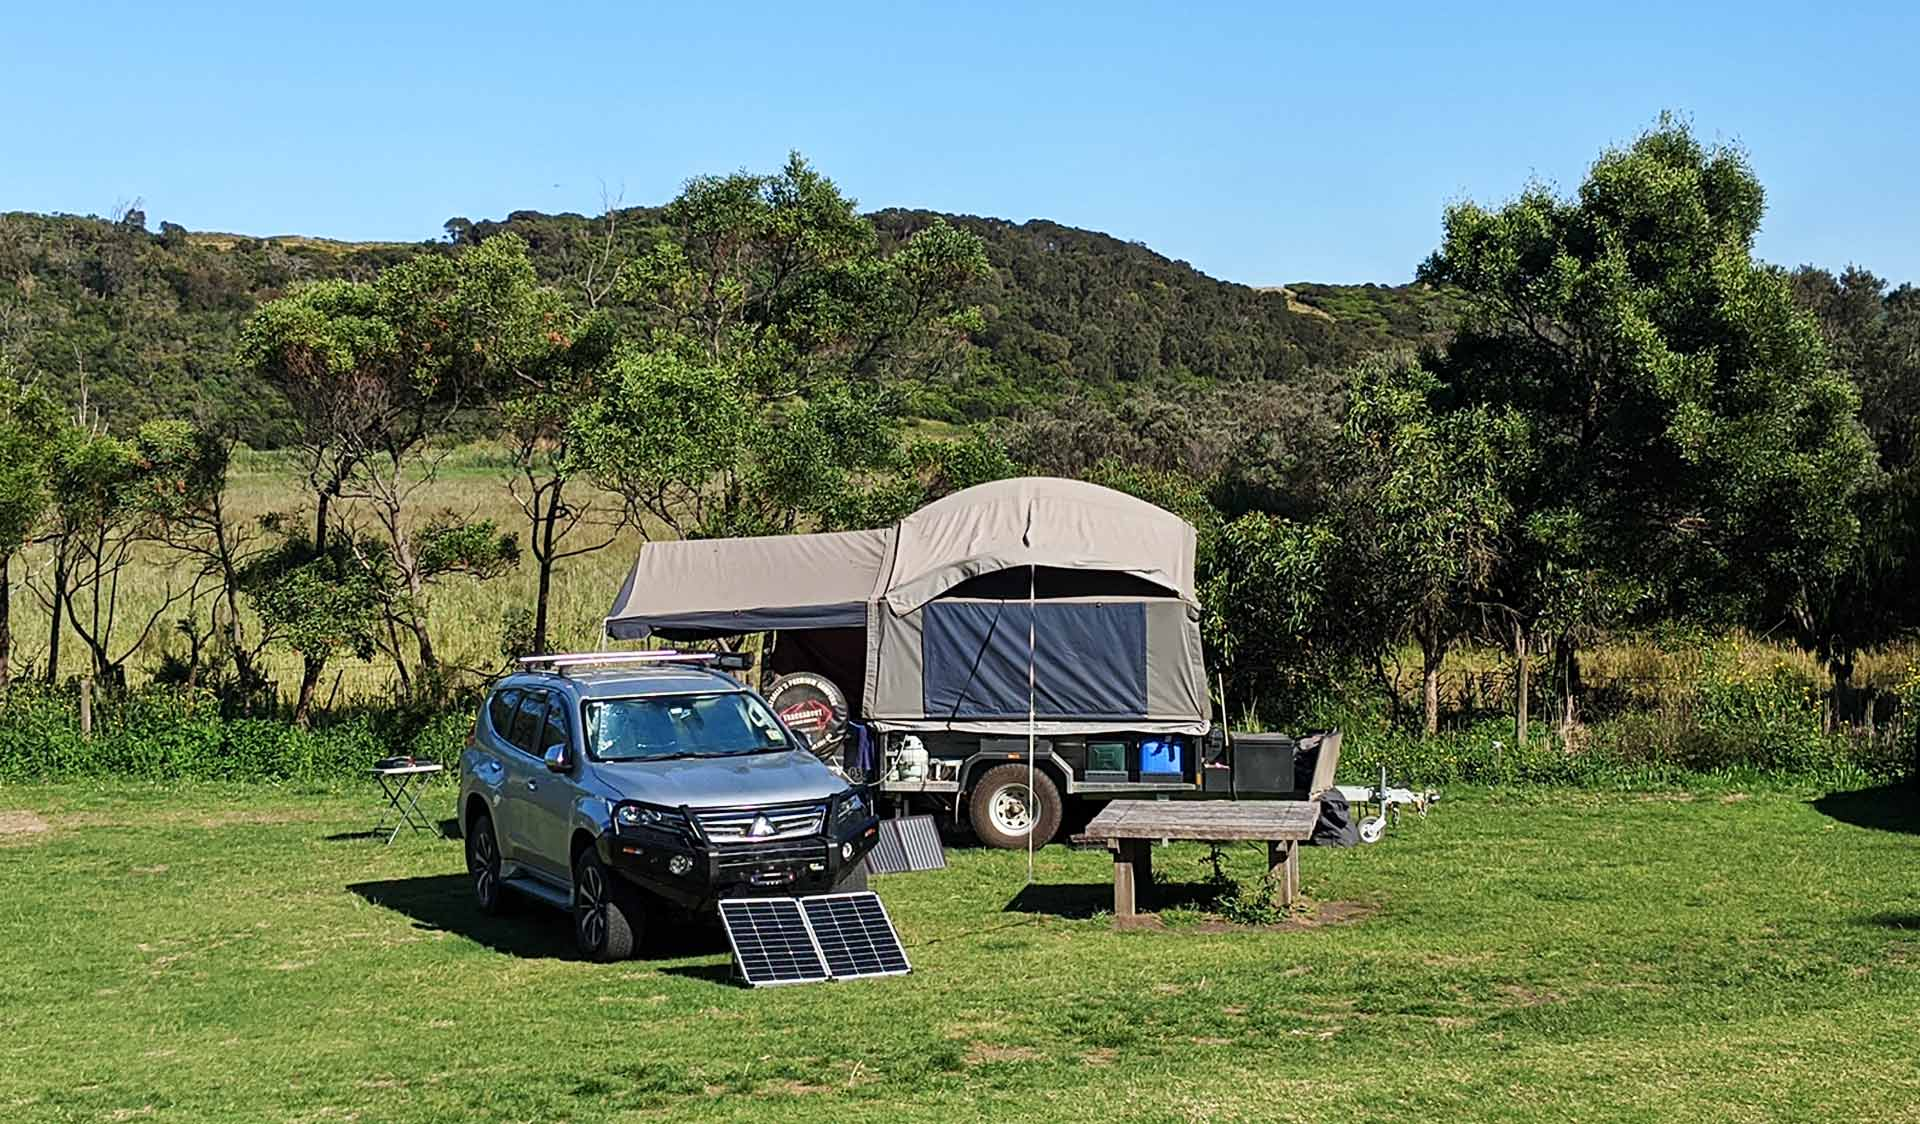 A car camping set up at Aire River East Campground in the Great Otway National Park